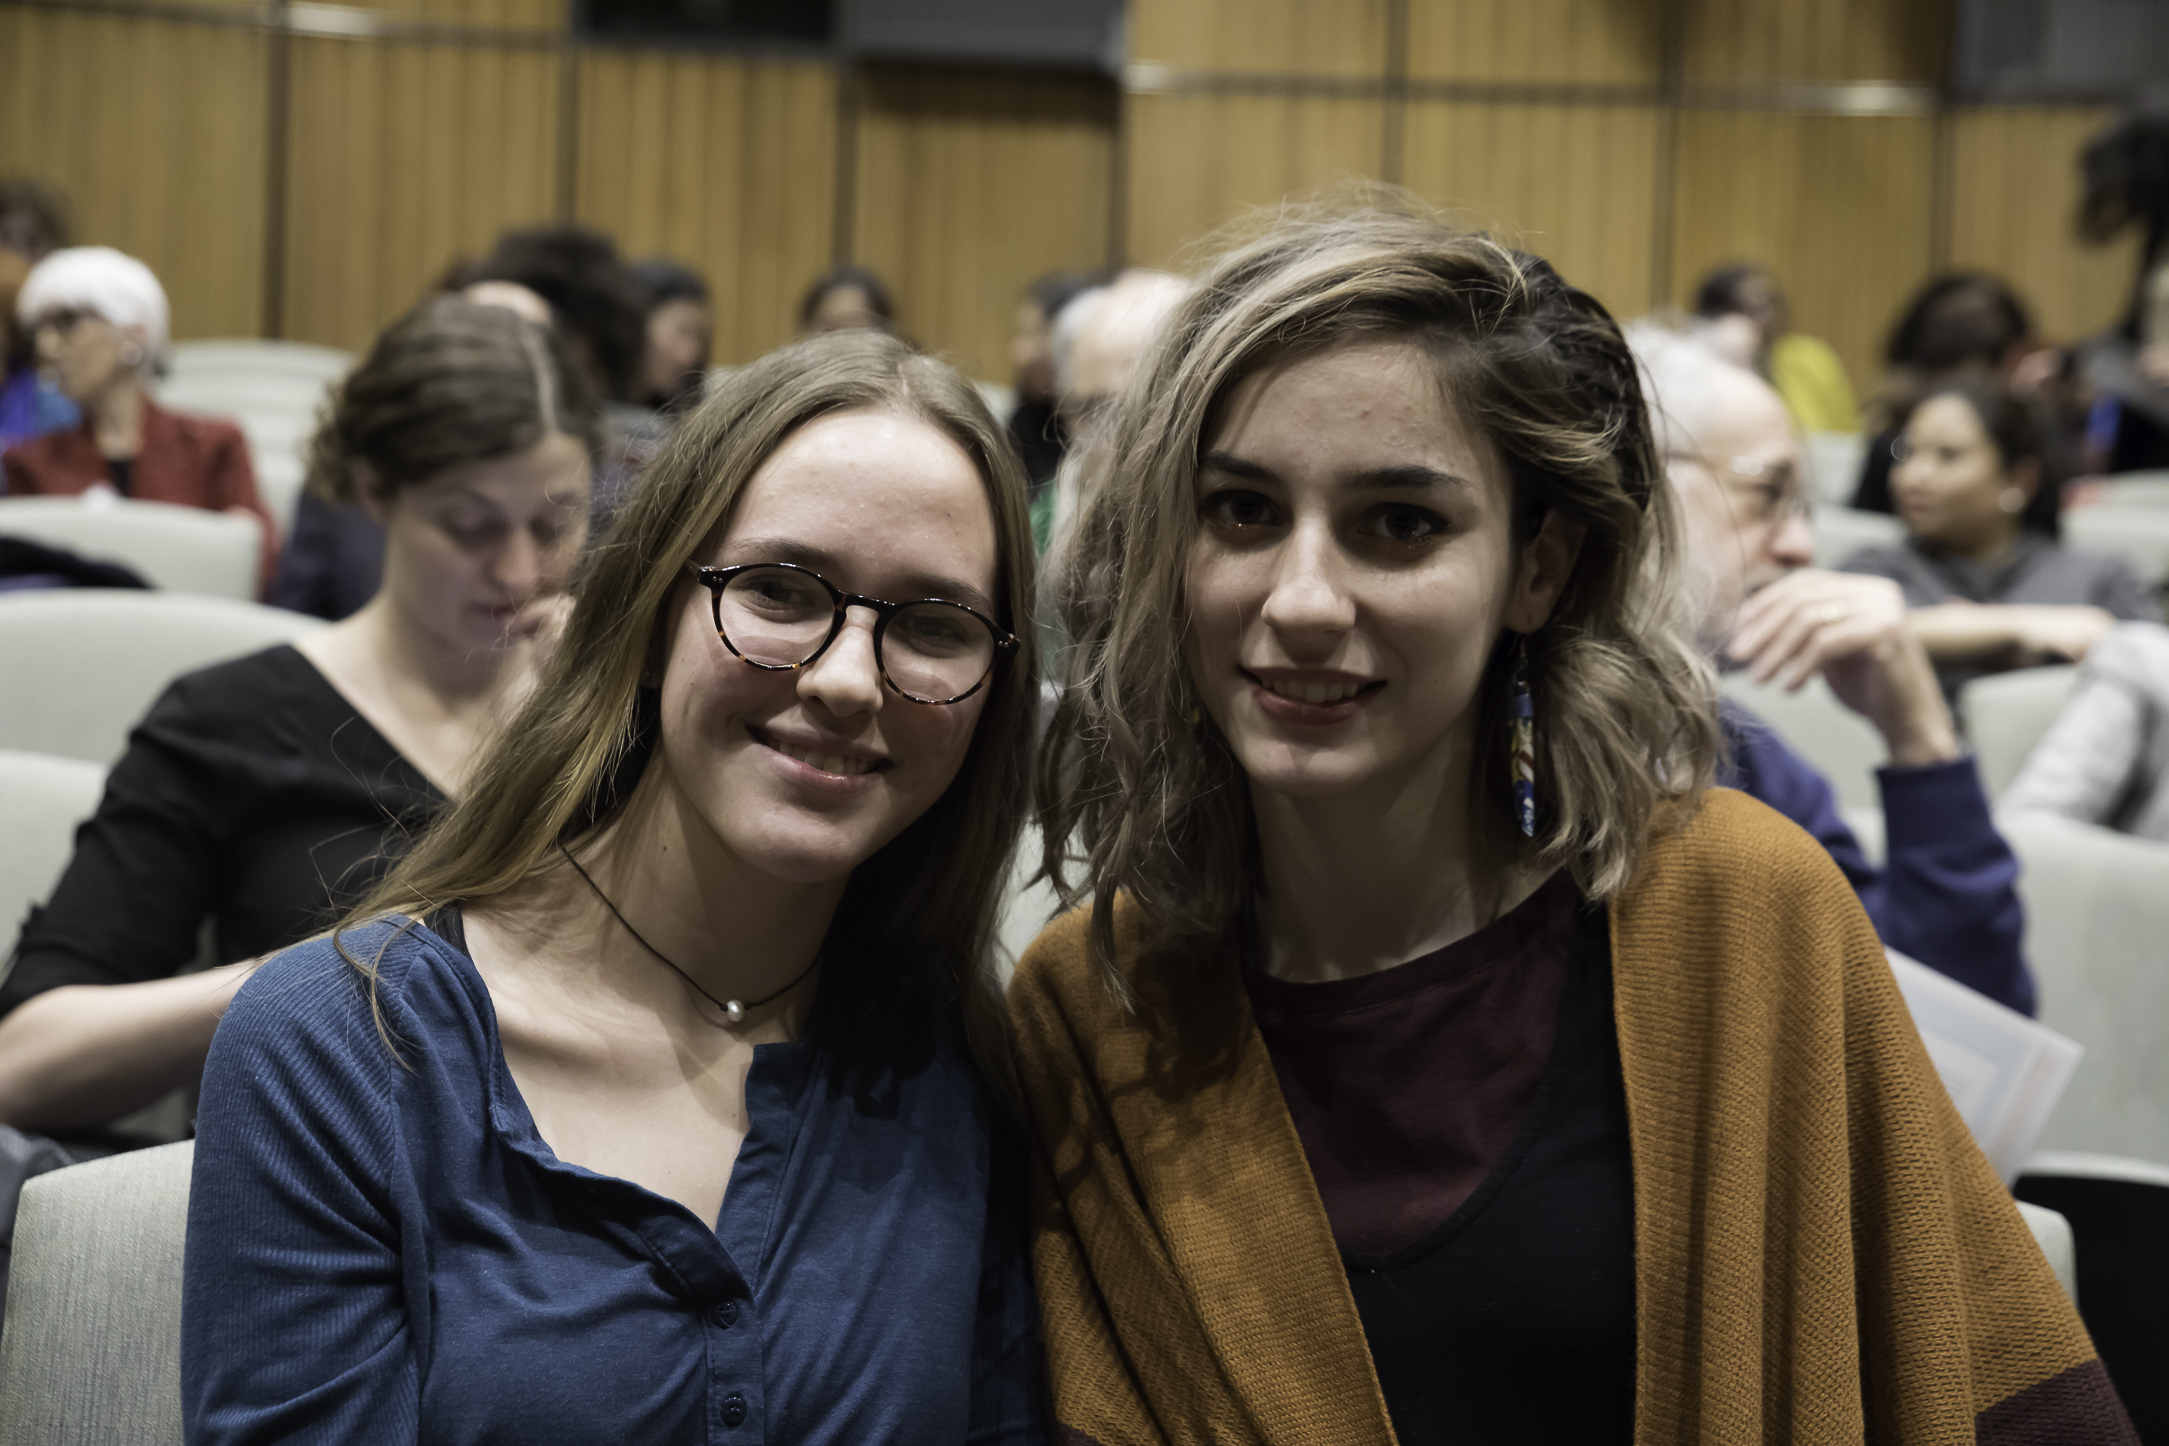 Cassandra Stavens (left) and Madeline Schmidt (right), members of the New York Philharmonic Very Young Composers program